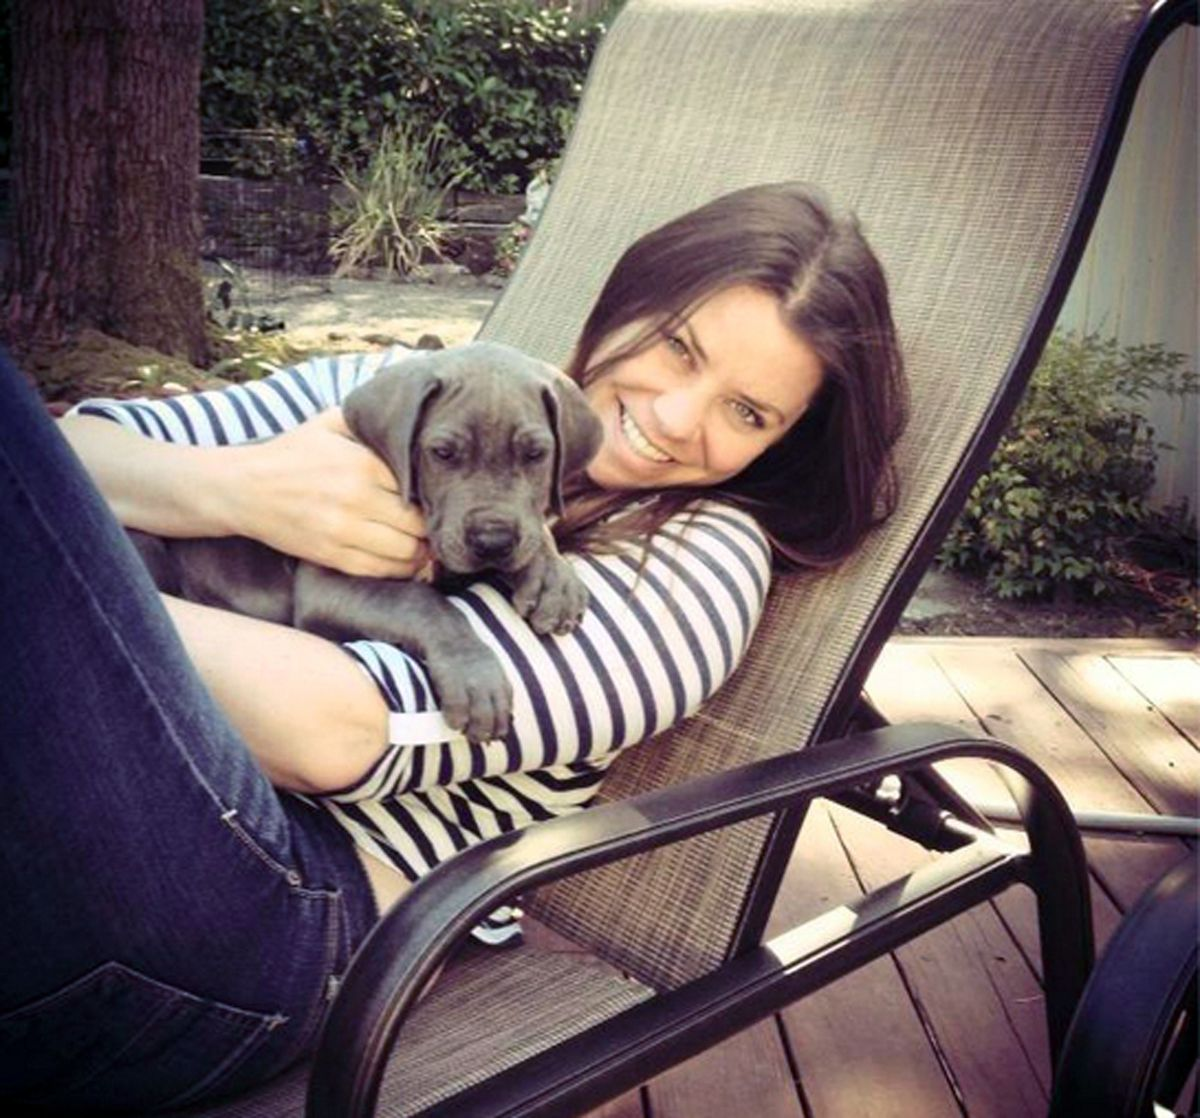 This undated photo provided by the Maynard family shows Brittany Maynard. The terminally ill California woman moved to Portland, Ore., to take advantage of Oregon's Death with Dignity Act, which was established in the 1990s.  Maynard wants to pass a similar law in California and has turned to advocacy in her final days. (AP Photo/Maynard Family) (AP)